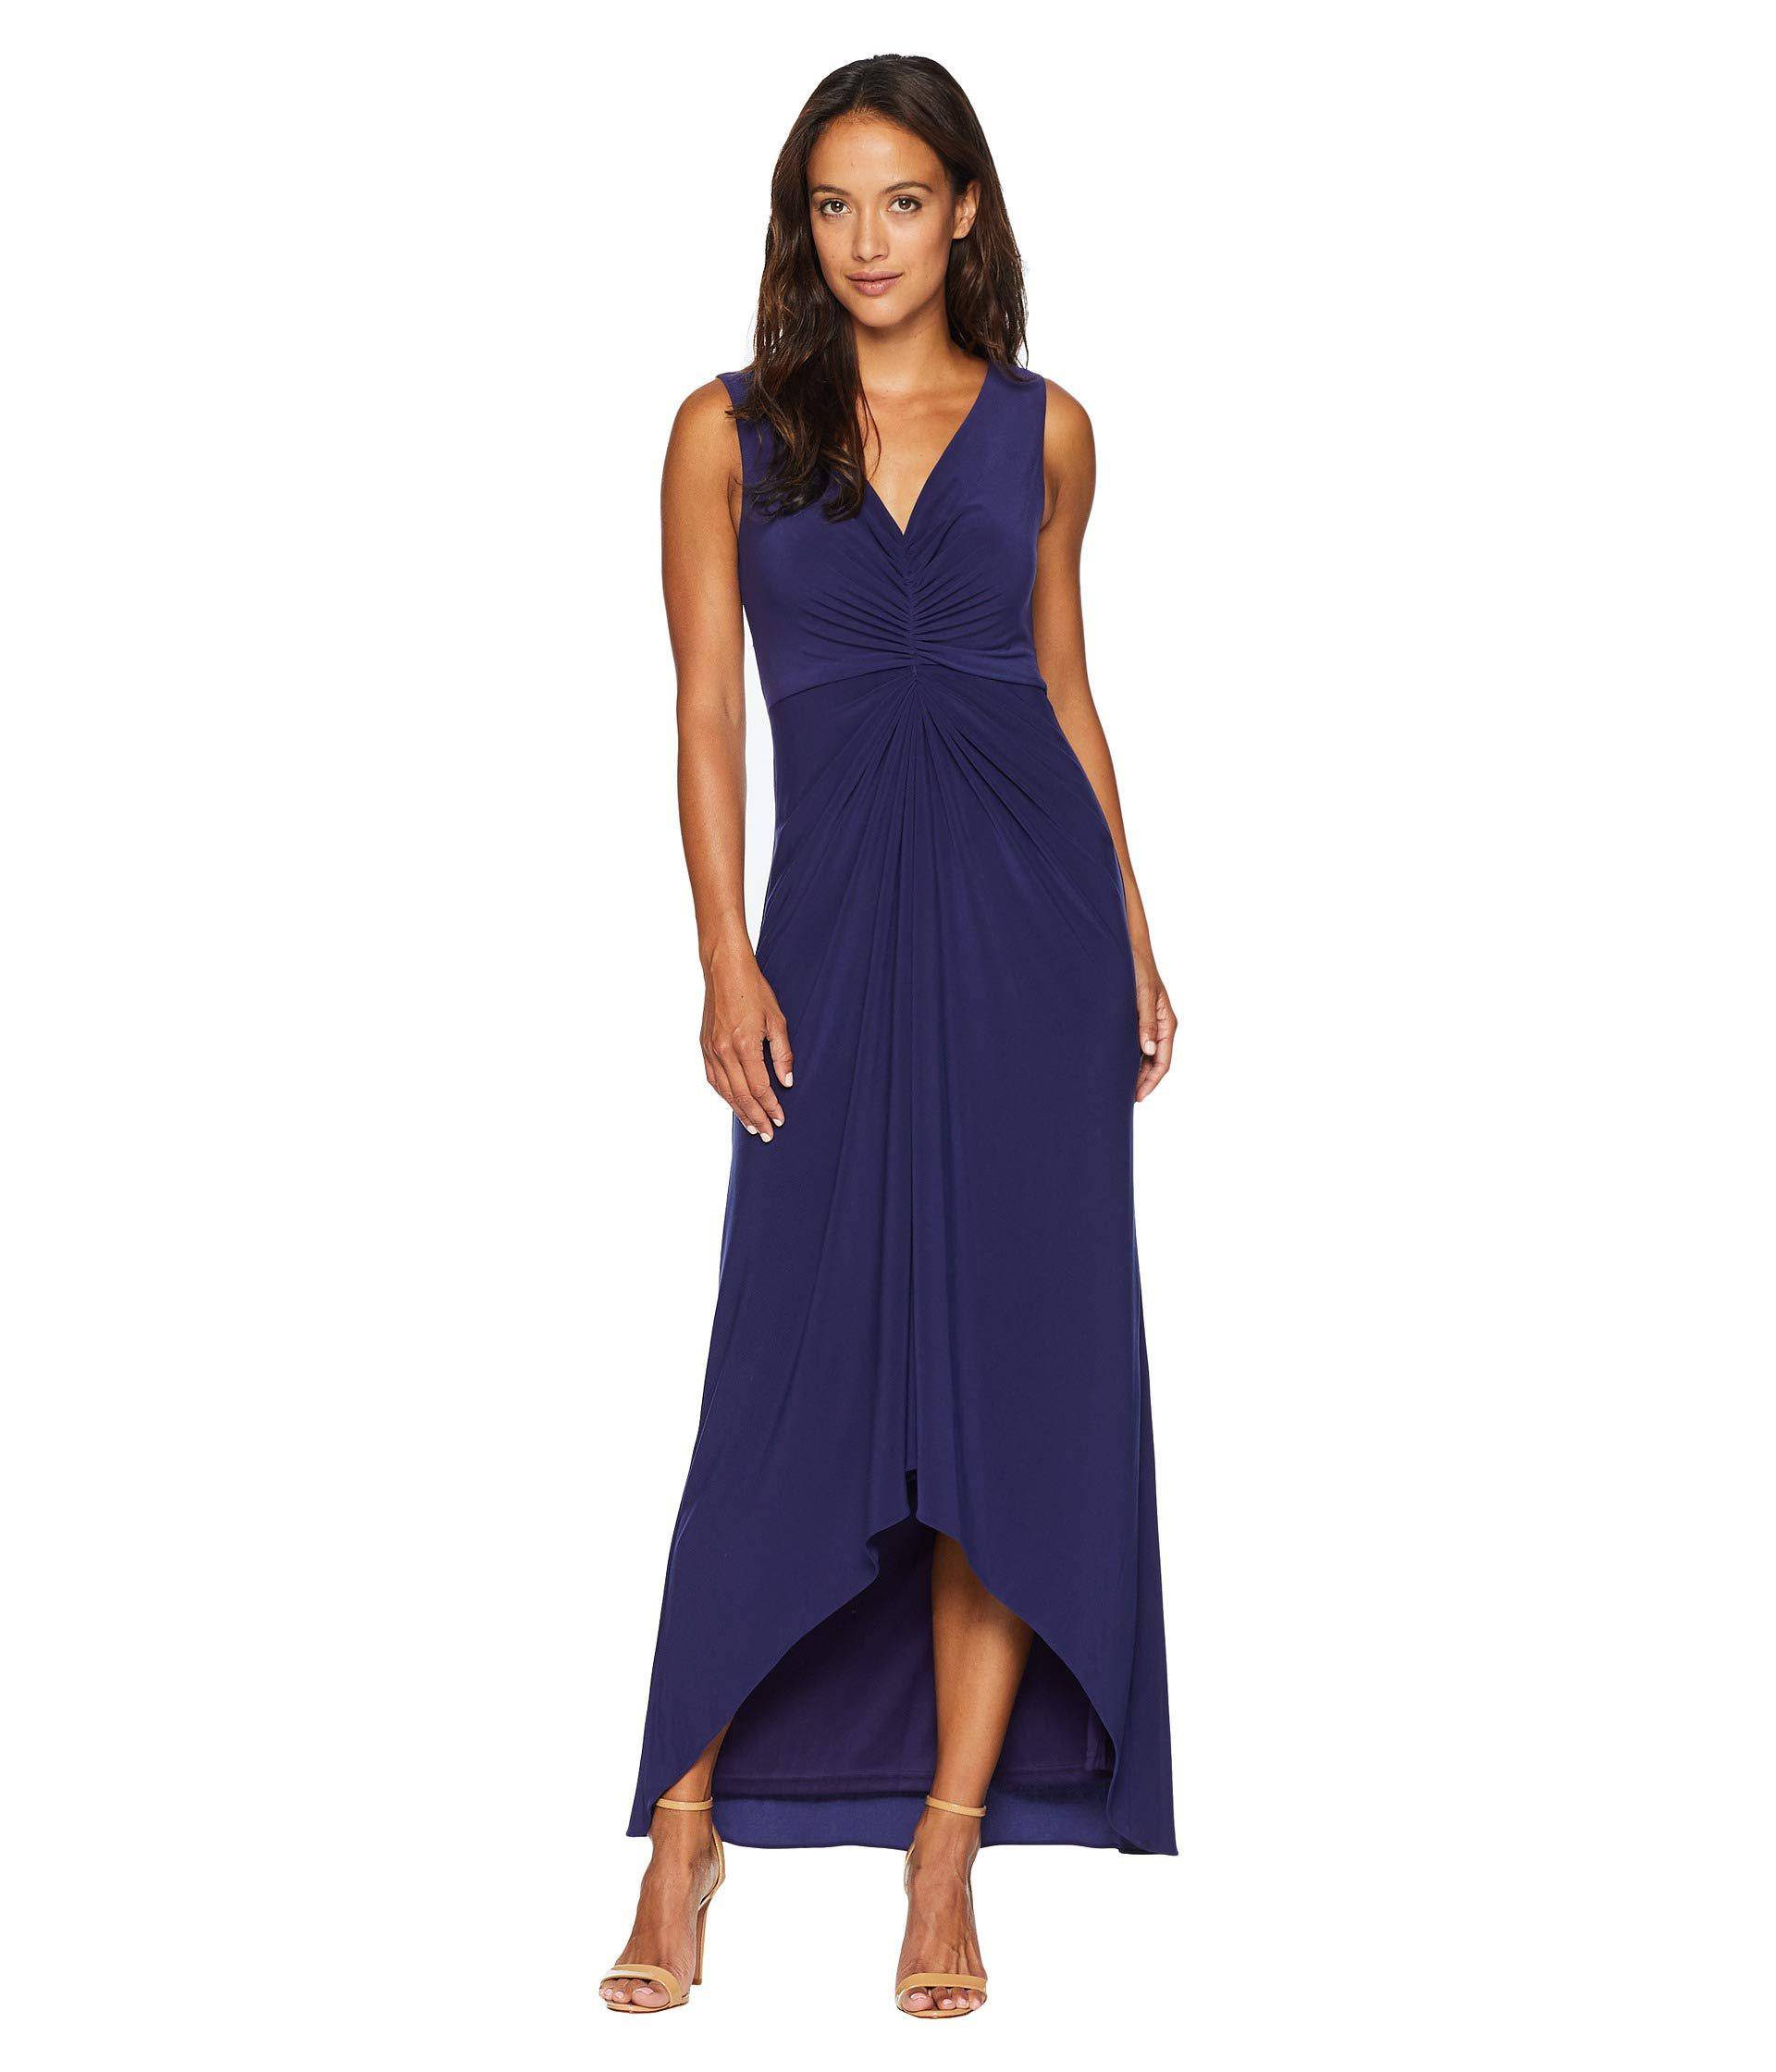 9c0cbdaec0 Lyst - Adrianna Papell Petite High-low Draped Front Jersey Gown in ...